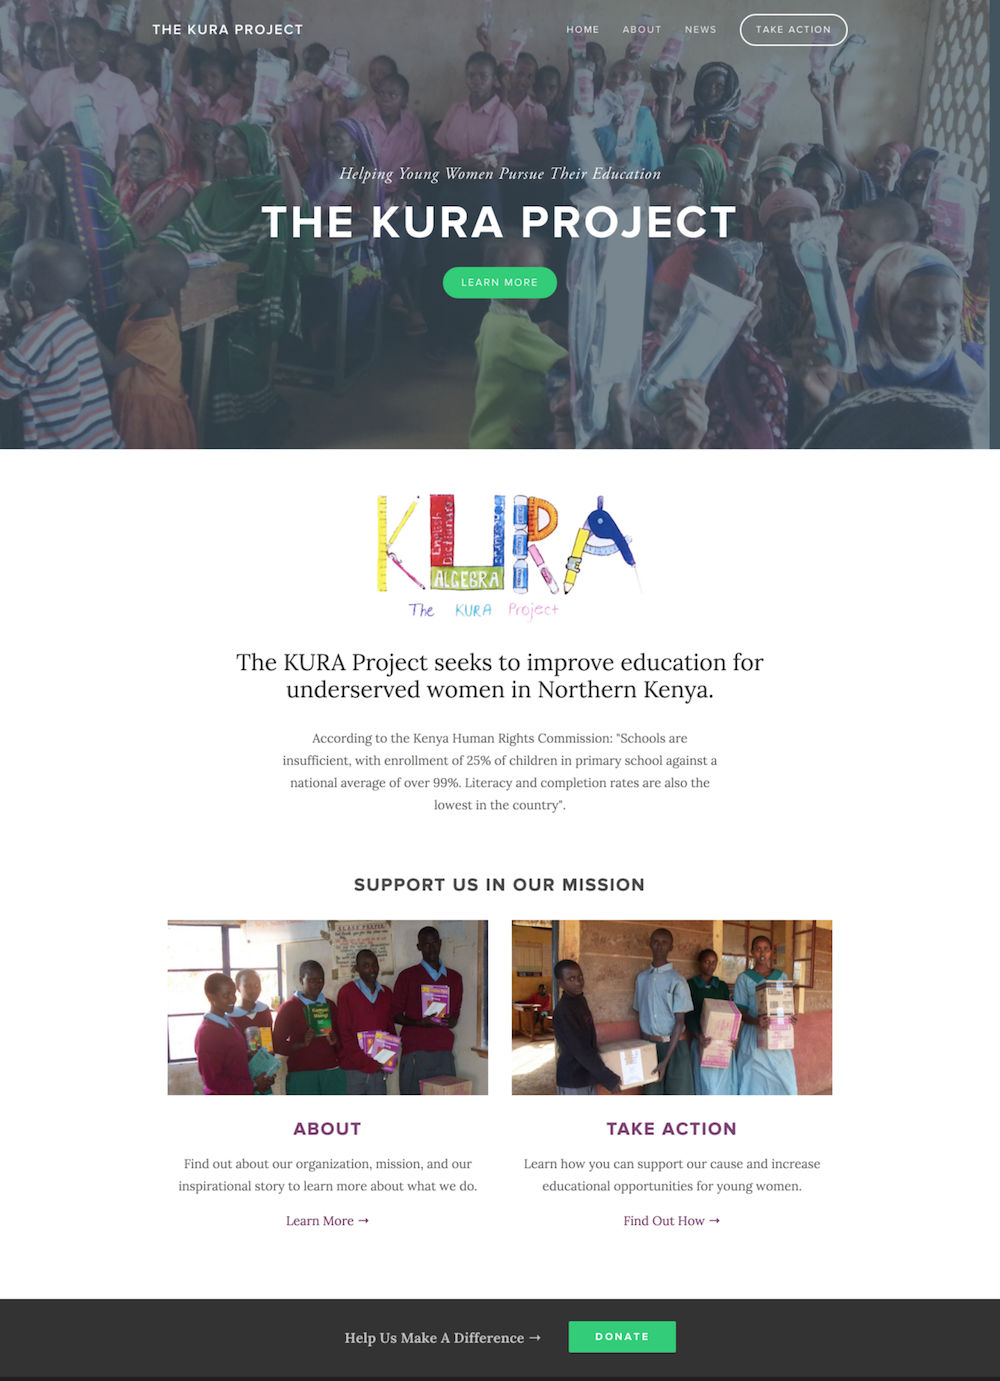 The Kura Project is a non-profit organization supporting the education of young women in Northern Kenya. They had little to know web presence before we launched their new site so they can now accept donations online!